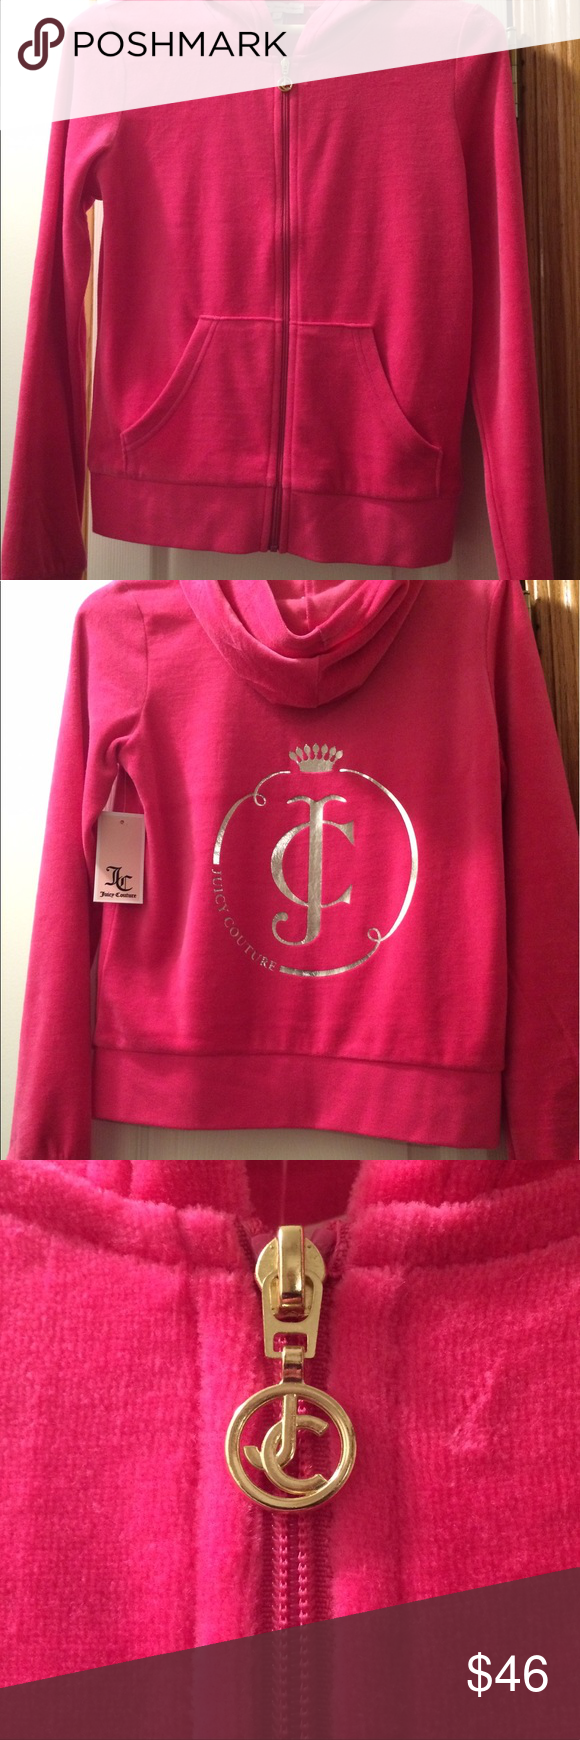 Flash sale juicy couture pink zip up hoodie nwt couture tops